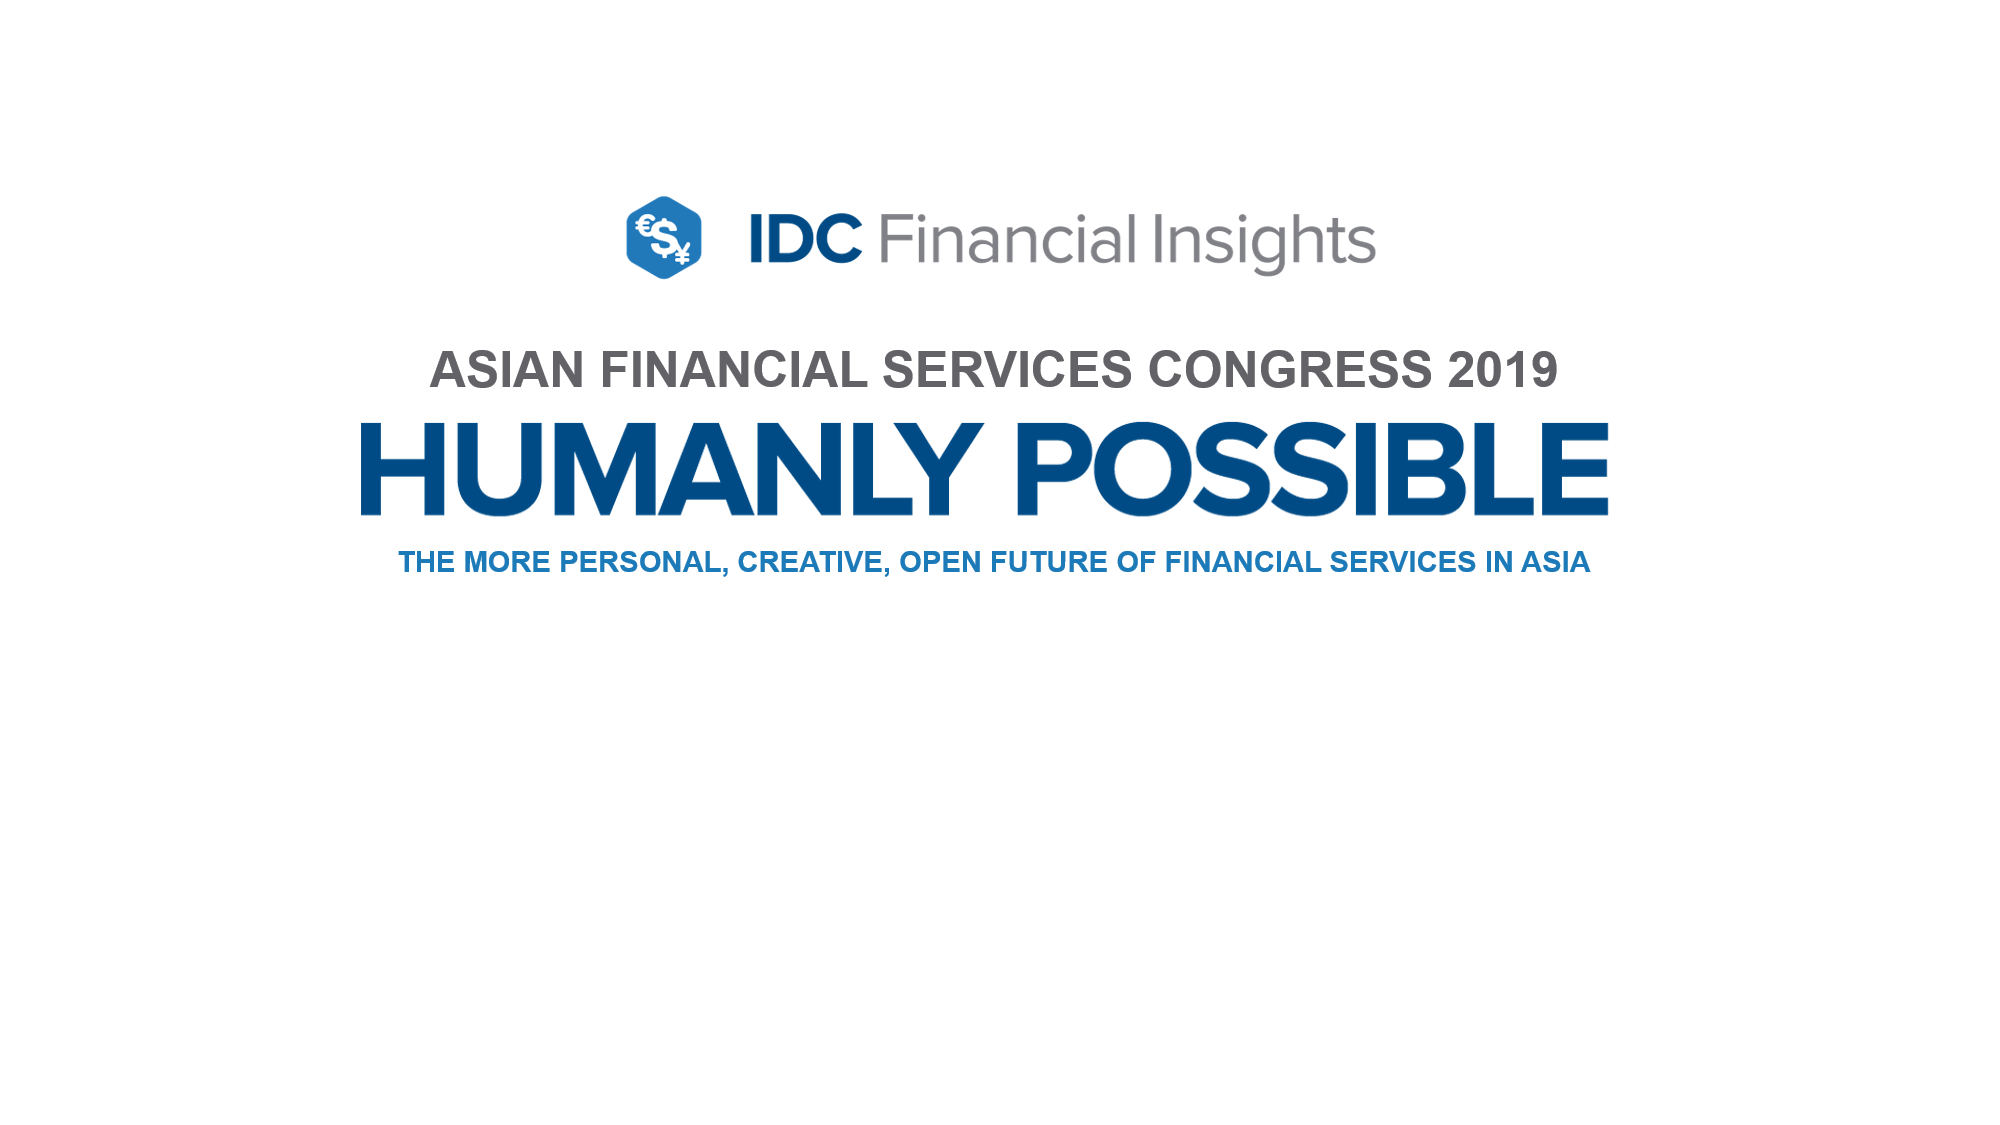 ASIAN FINANCIAL SERVICES CONGRESS 2019